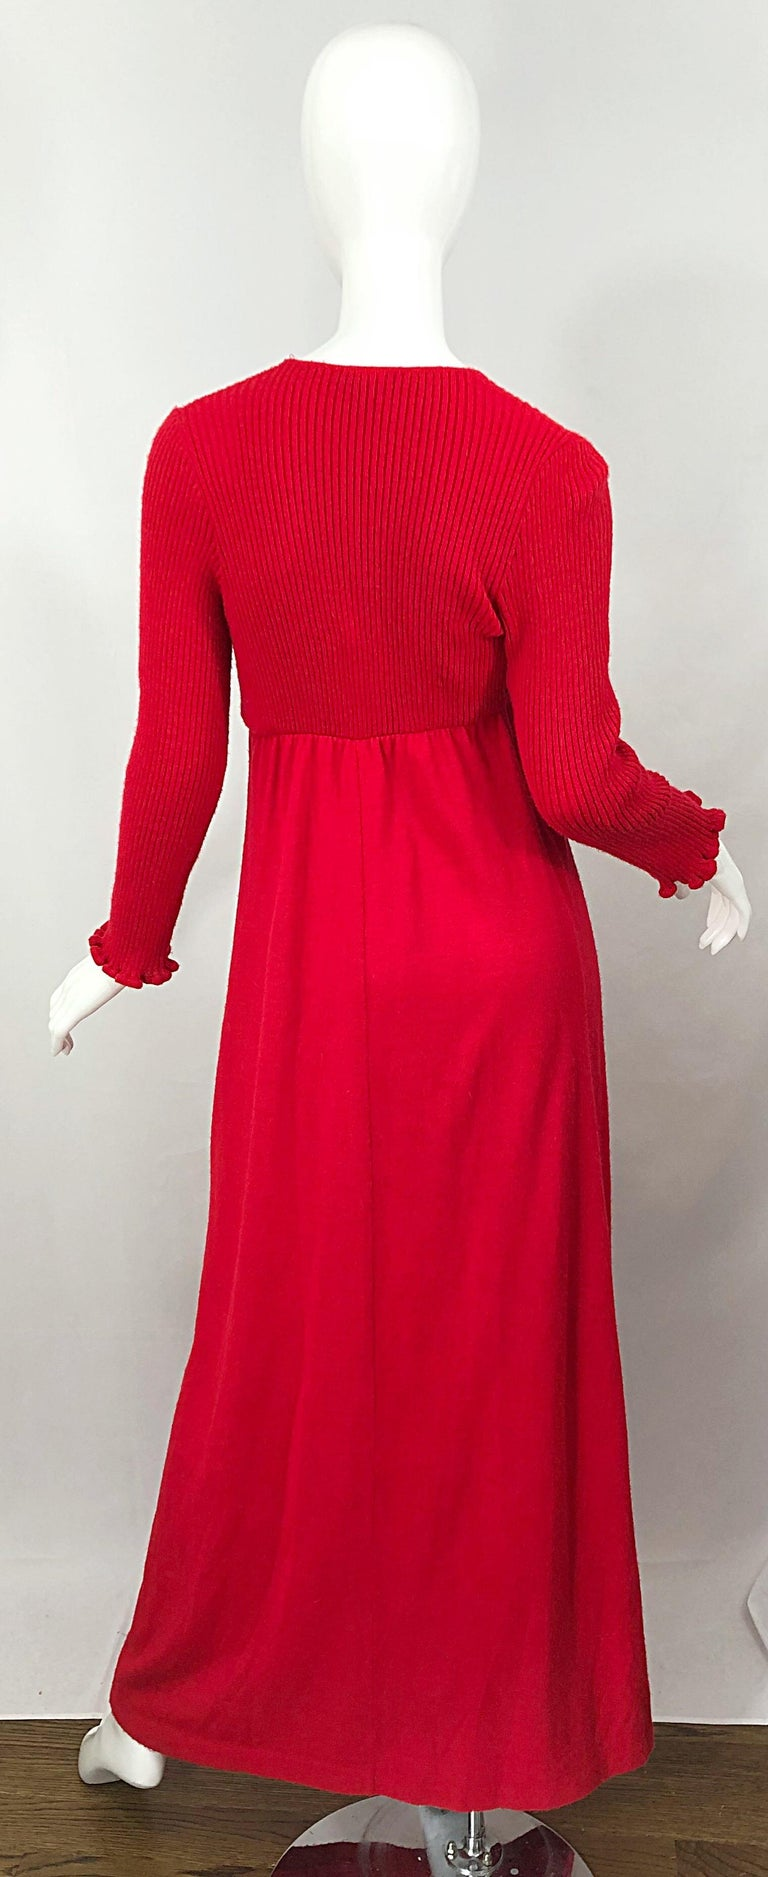 Vintage Joseph Magnin 1970s Lipstick Red Long Sleeve Wool 70s Sweater Maxi Dress In Excellent Condition For Sale In Chicago, IL